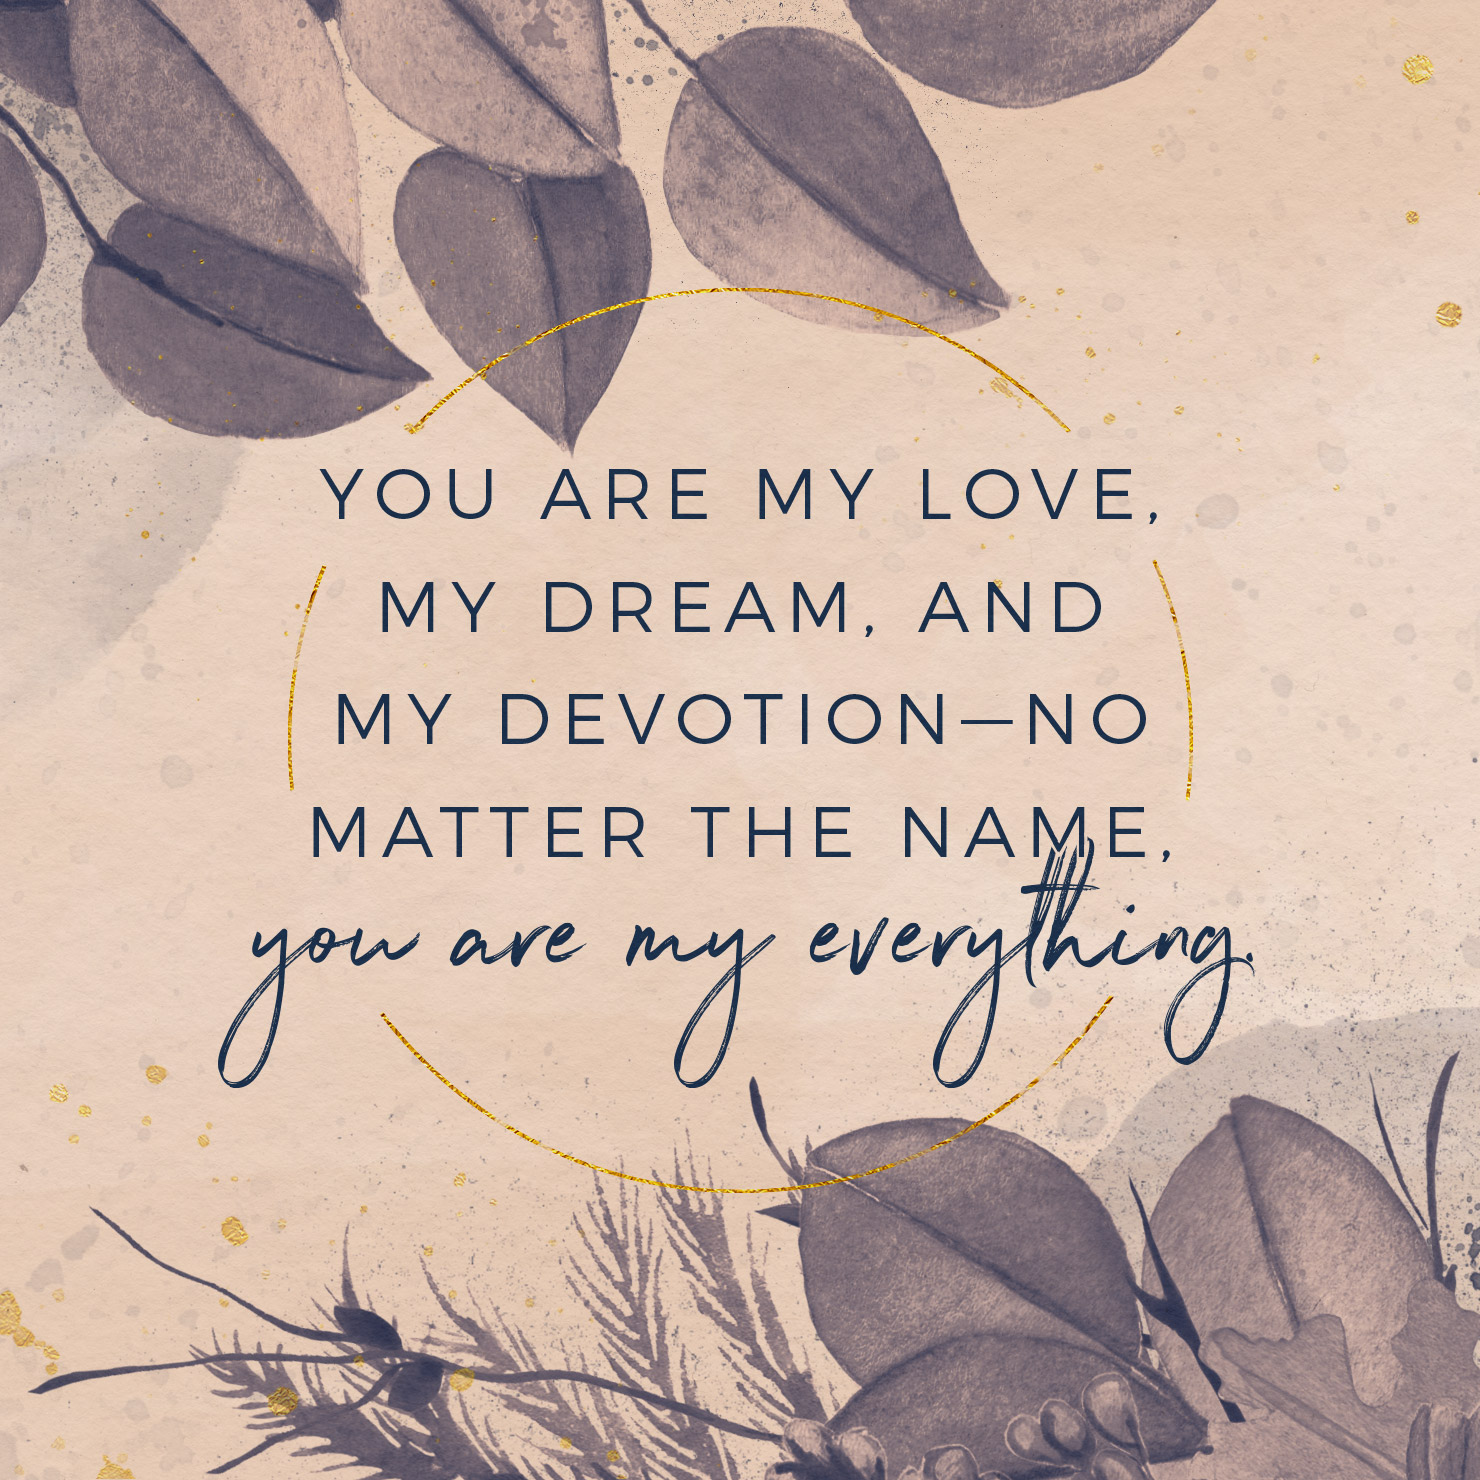 You are my love, my dream, and my devotion—no matter the name, you are my everything.